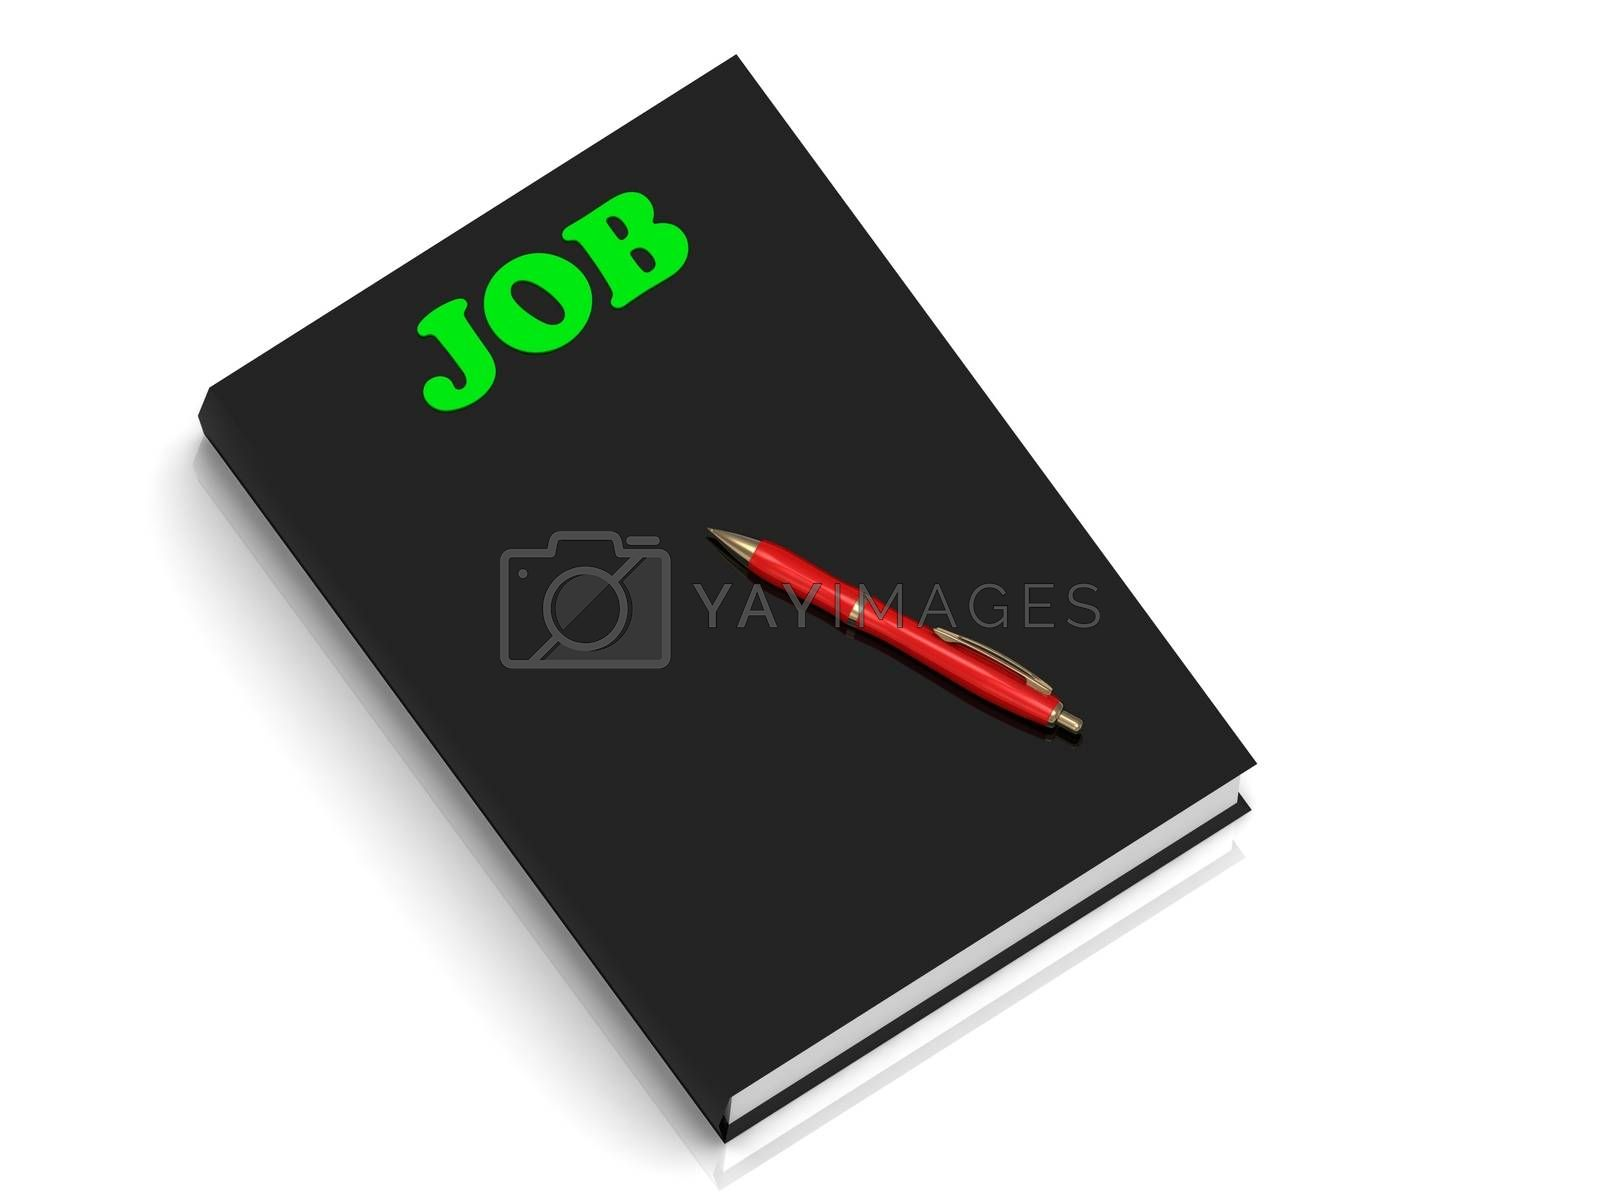 JOB- inscription of green letters on black book on white background